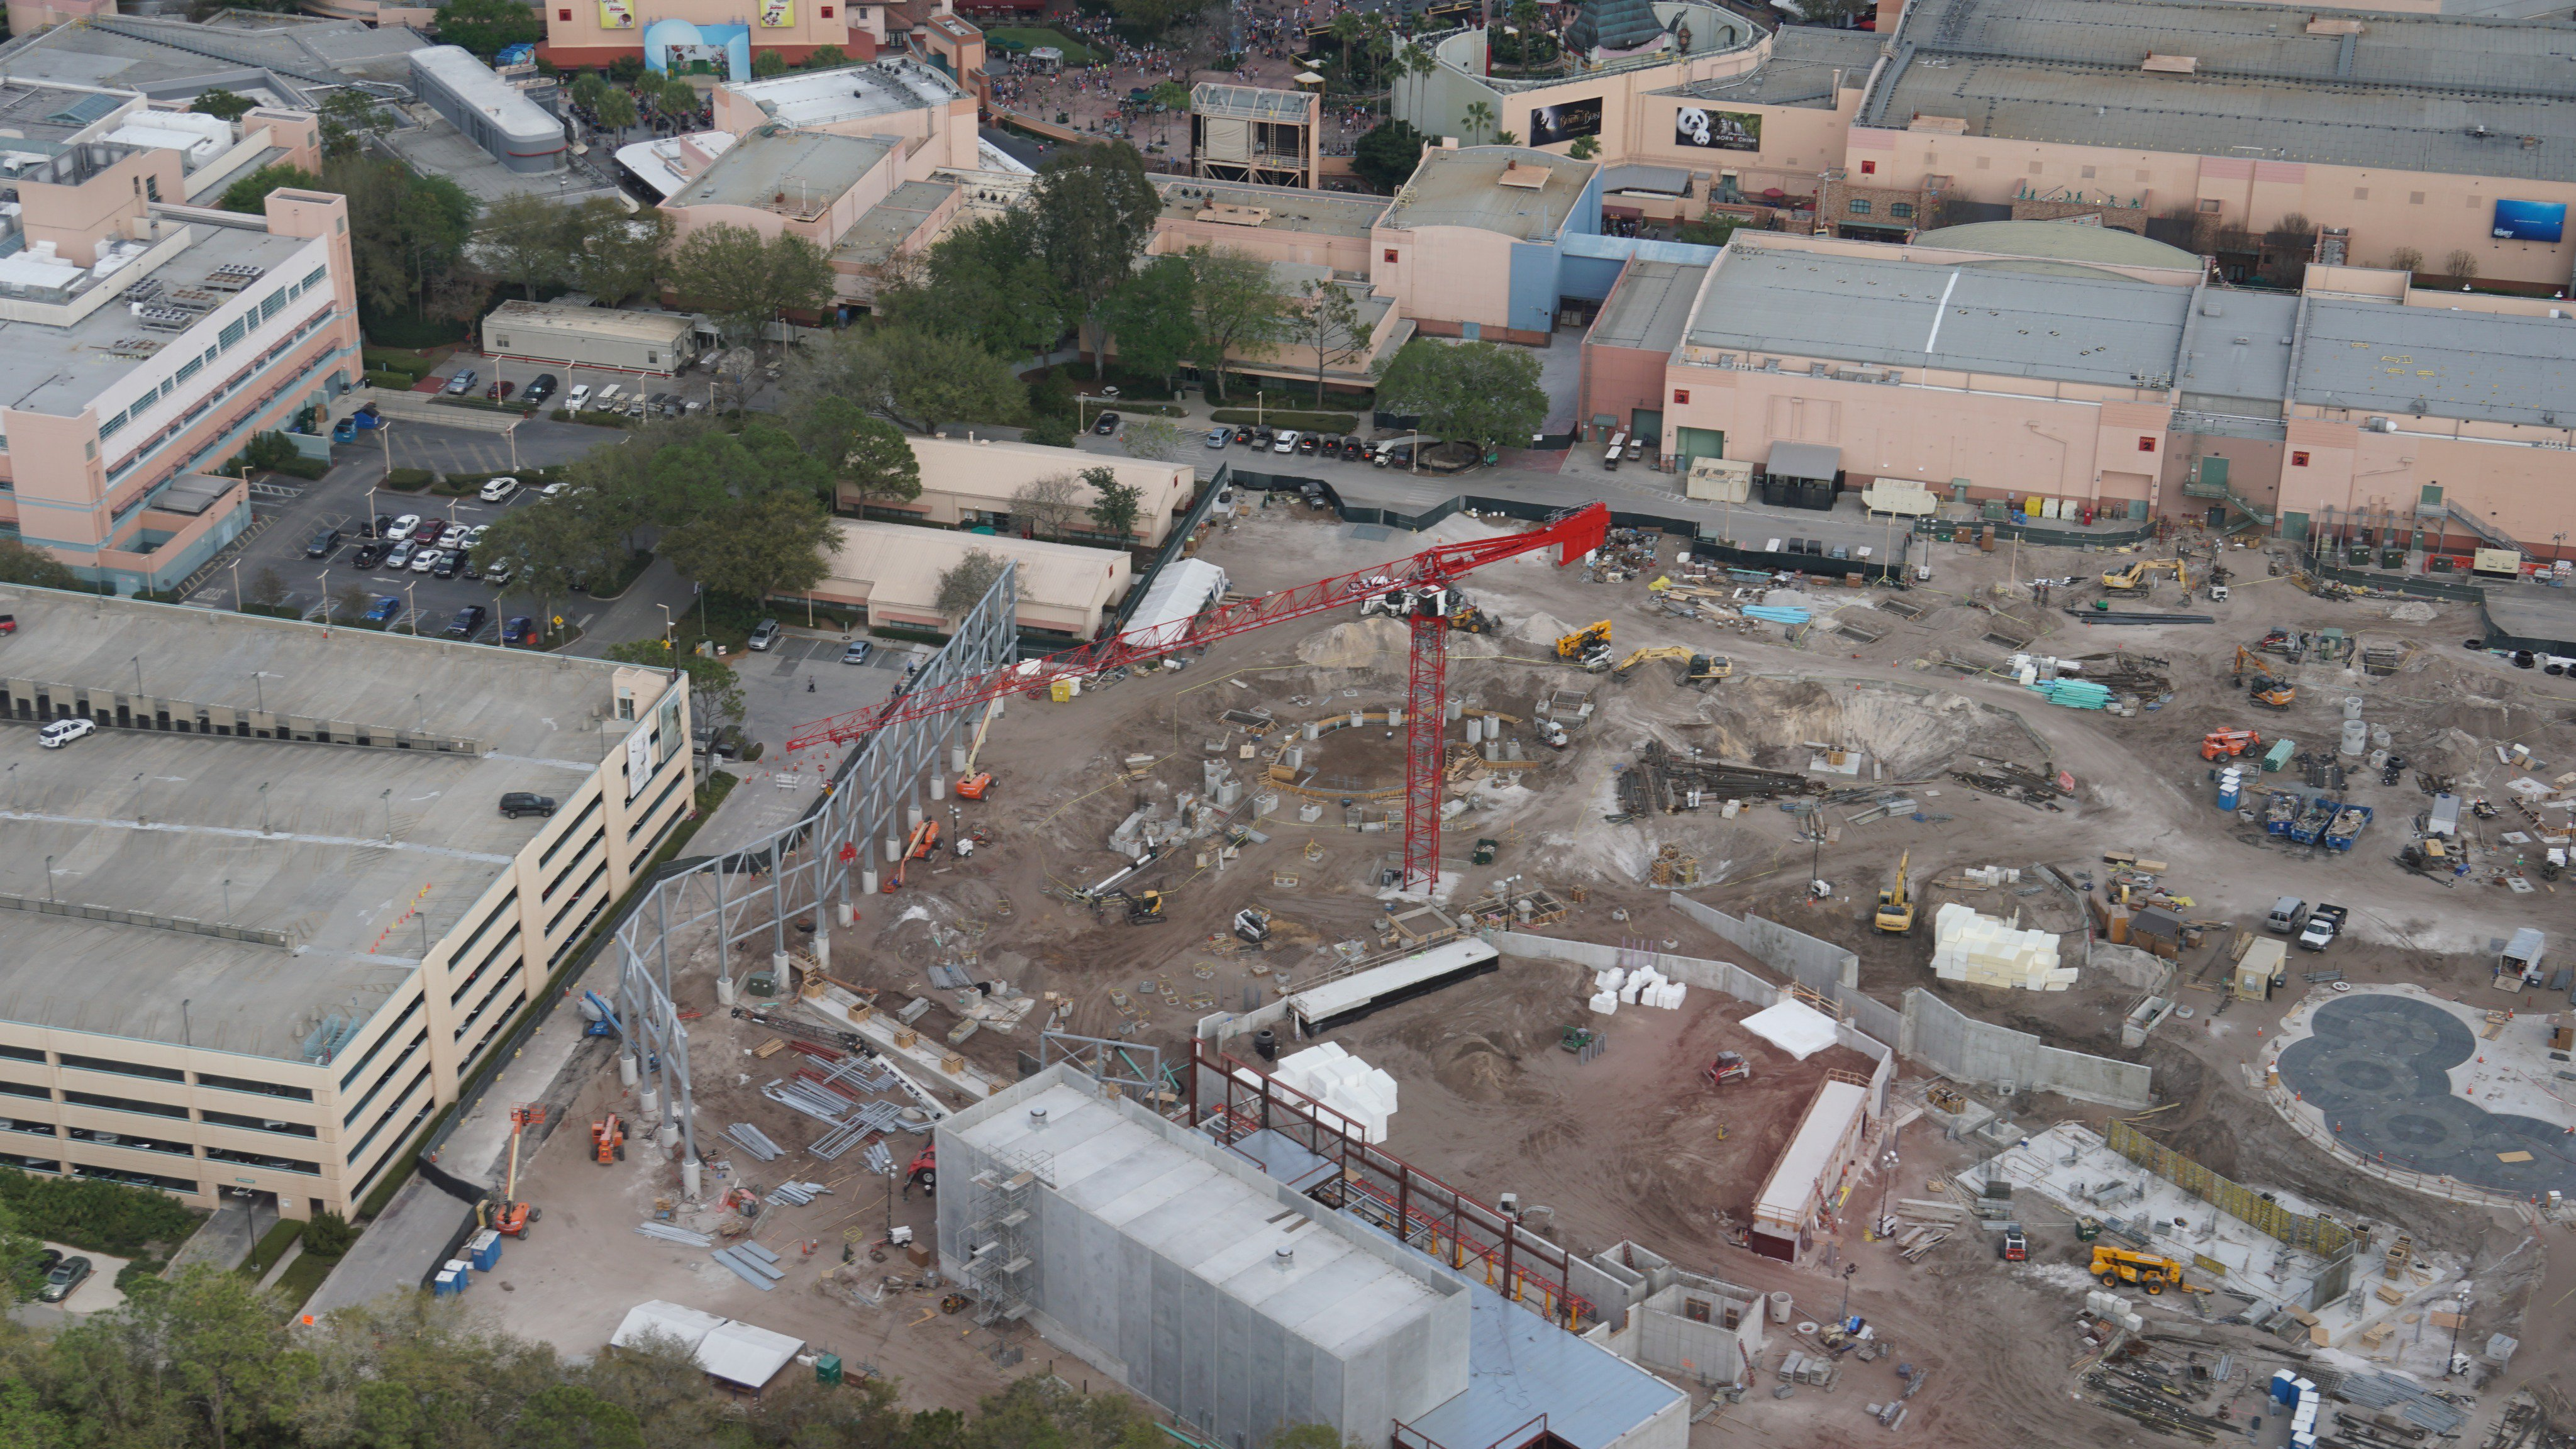 [Disney's Hollywood Studios] Toy Story Land (30 juin 2018) - Page 4 ToyStoryLand-air-03252017-1